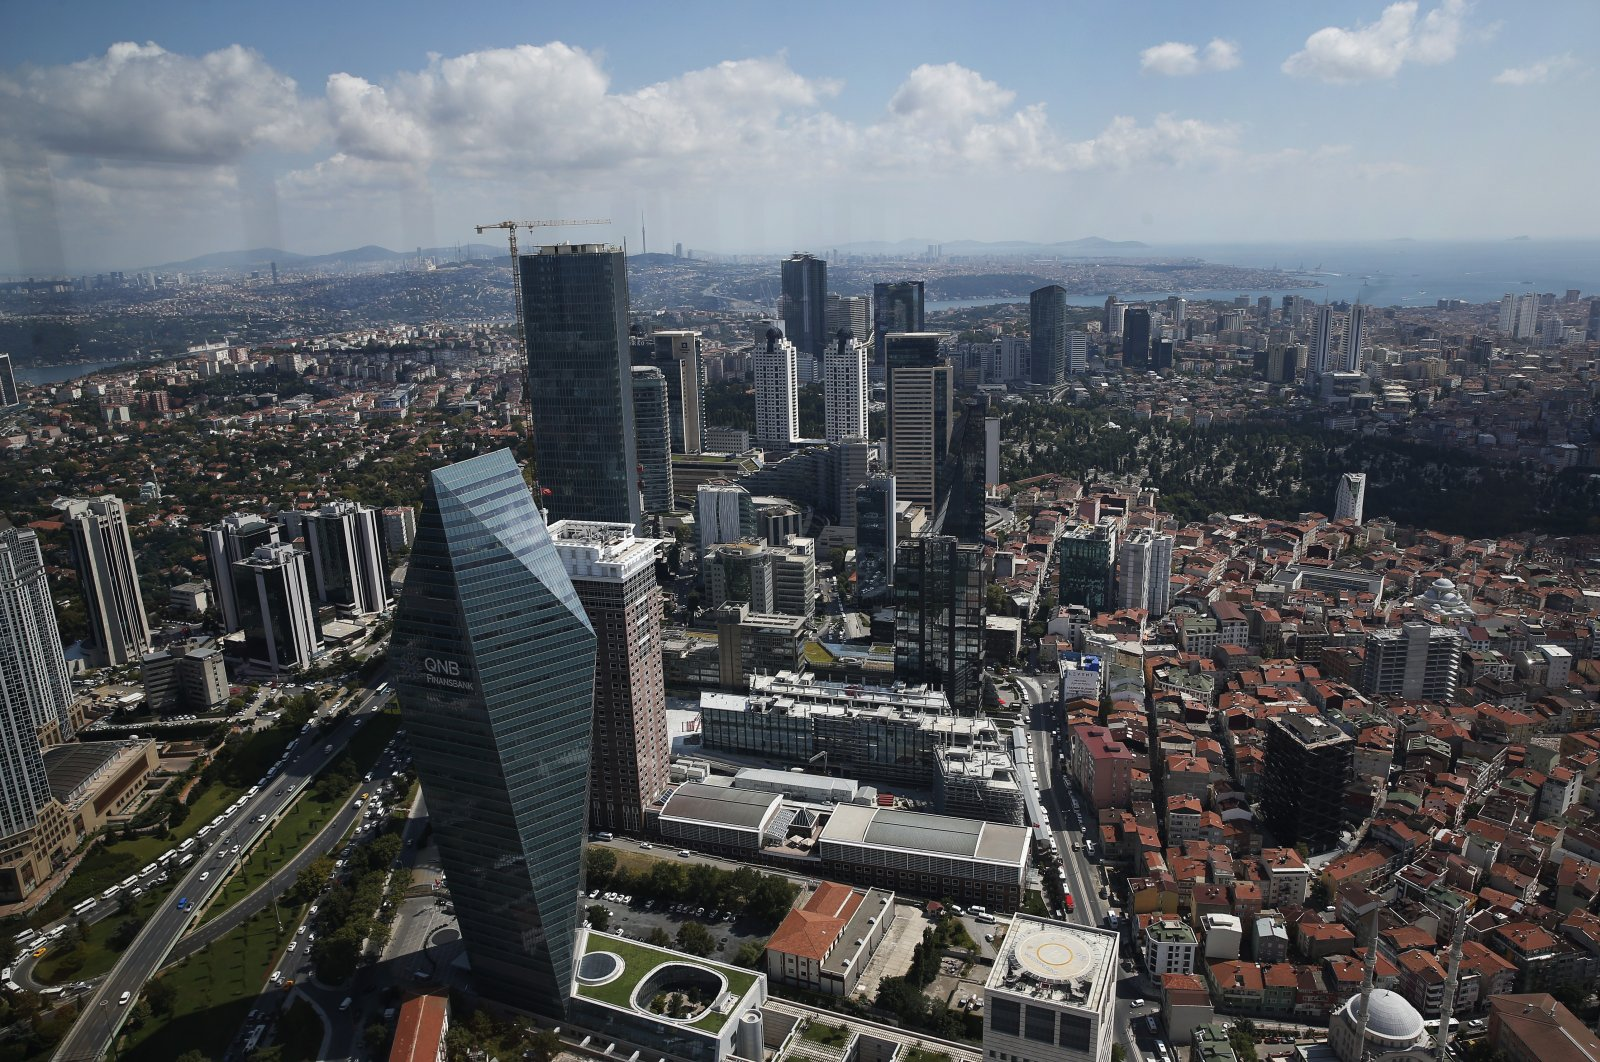 A general view of Istanbul's financial and commercial Levent district, where many of Turkey's leading banks and companies have their headquarters, Aug. 16, 2018. (AP Photo)